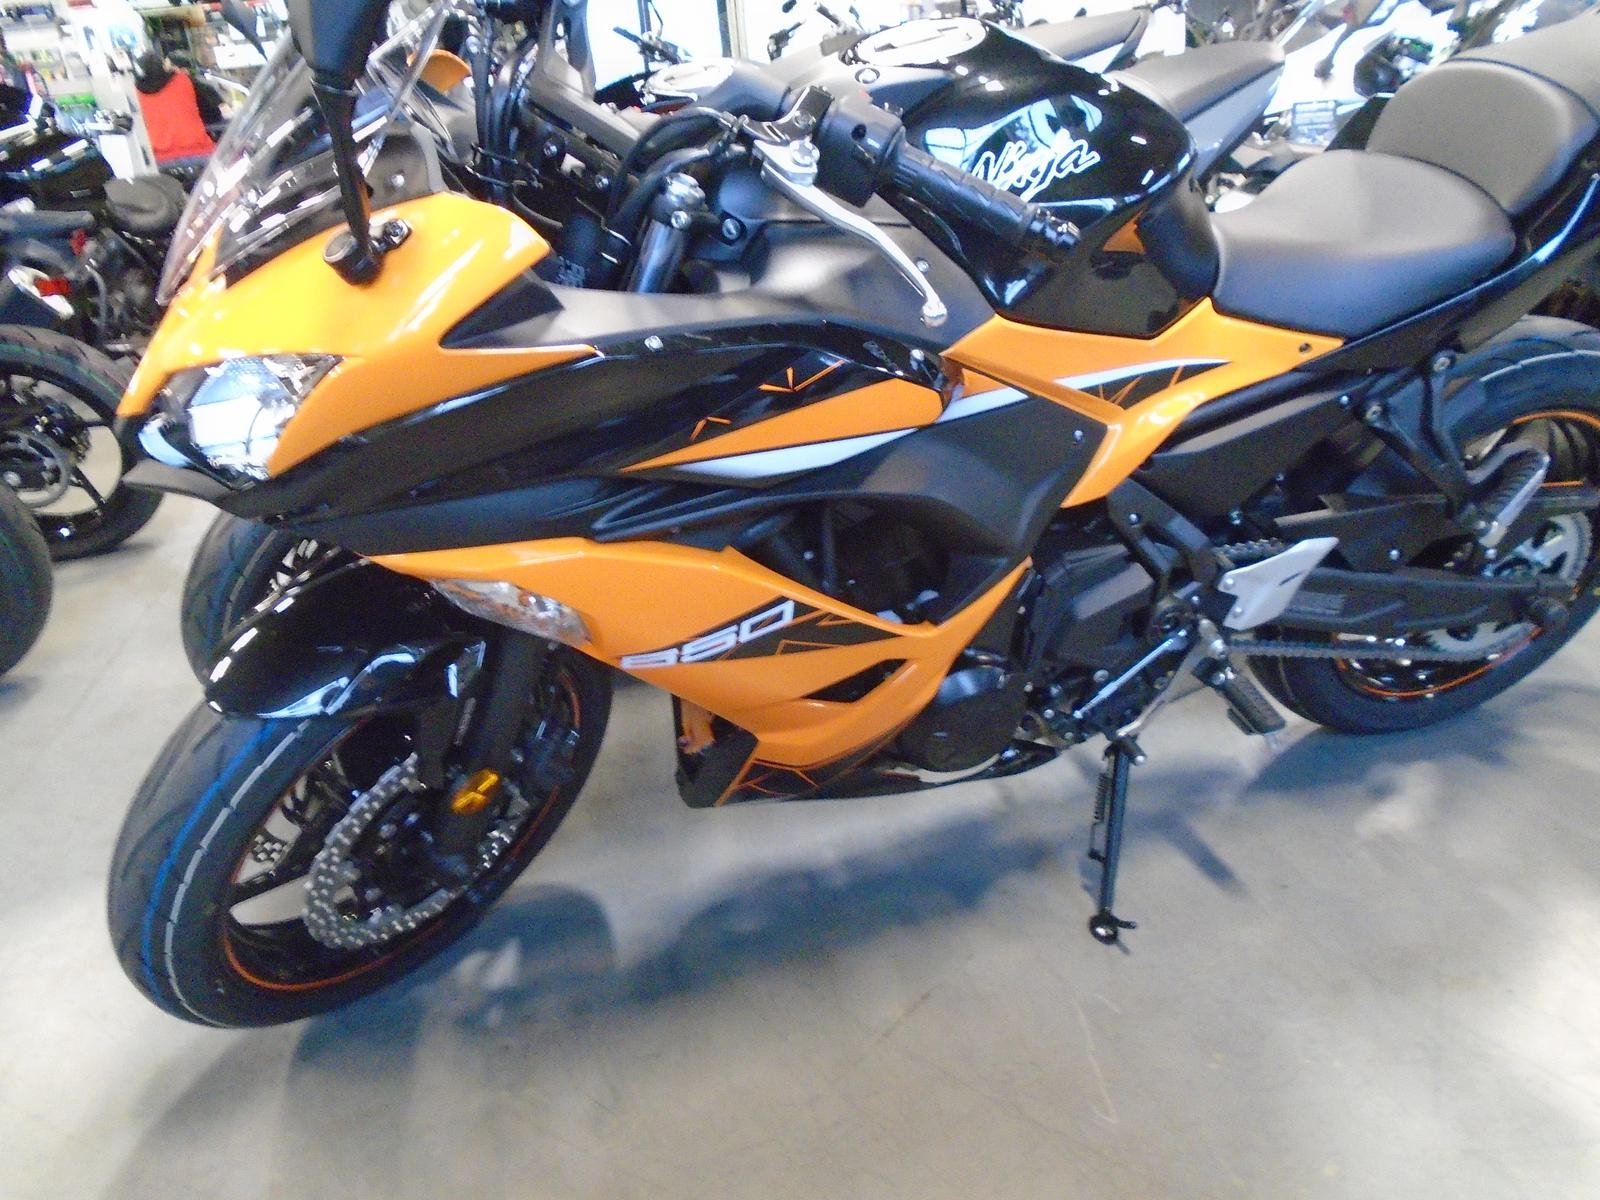 2019 Kawasaki Ninja 650 Abs Candy Orangemetallic Black For Sale